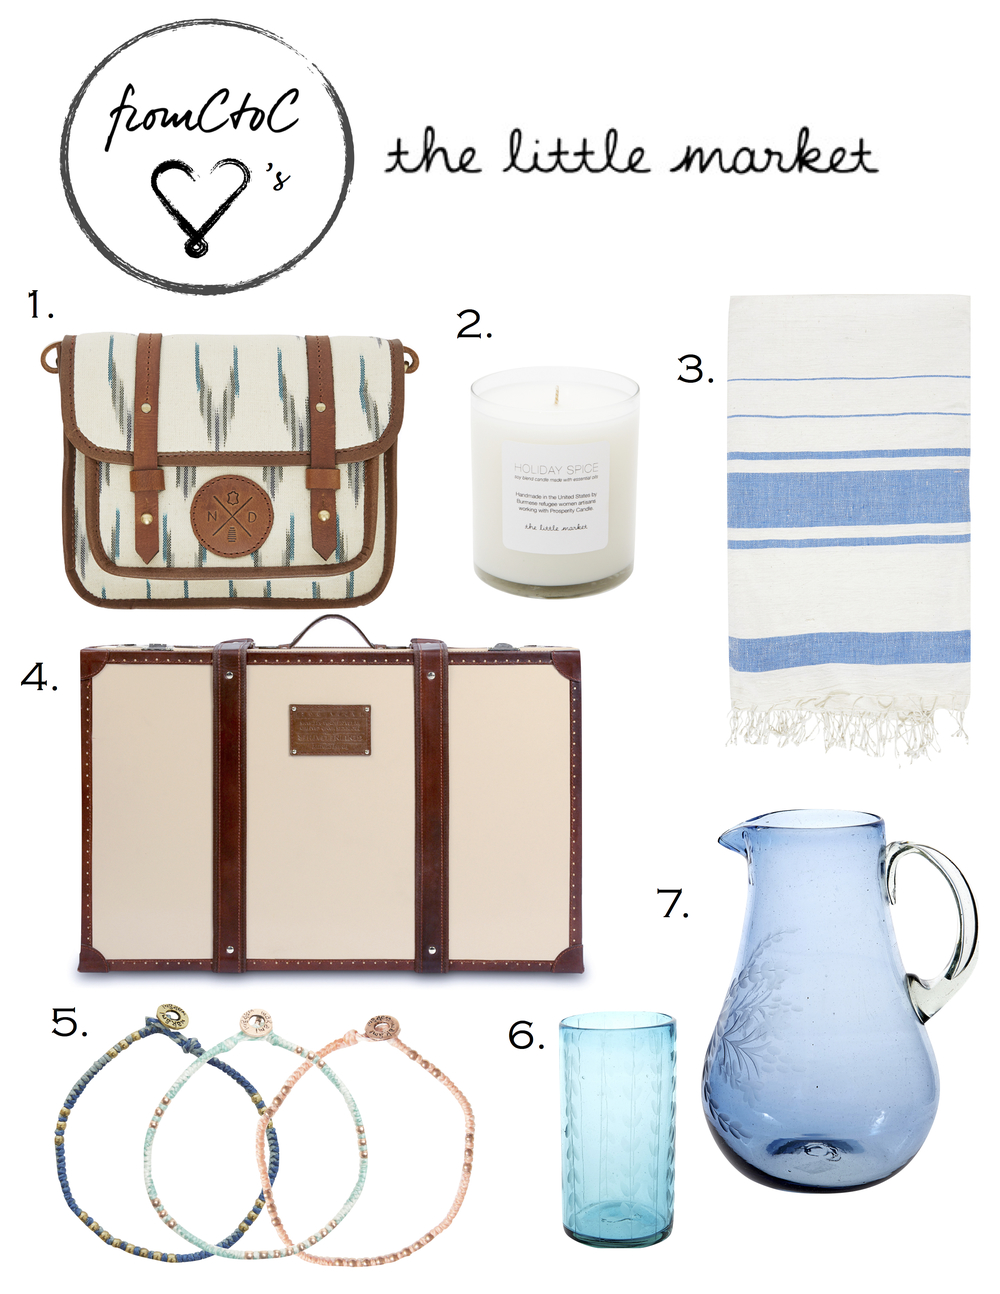 the-little-market-gift-guide-favorites-free-trade-ideas-lifestyle-bloger-vintage-lugagge-miami-fl-2014